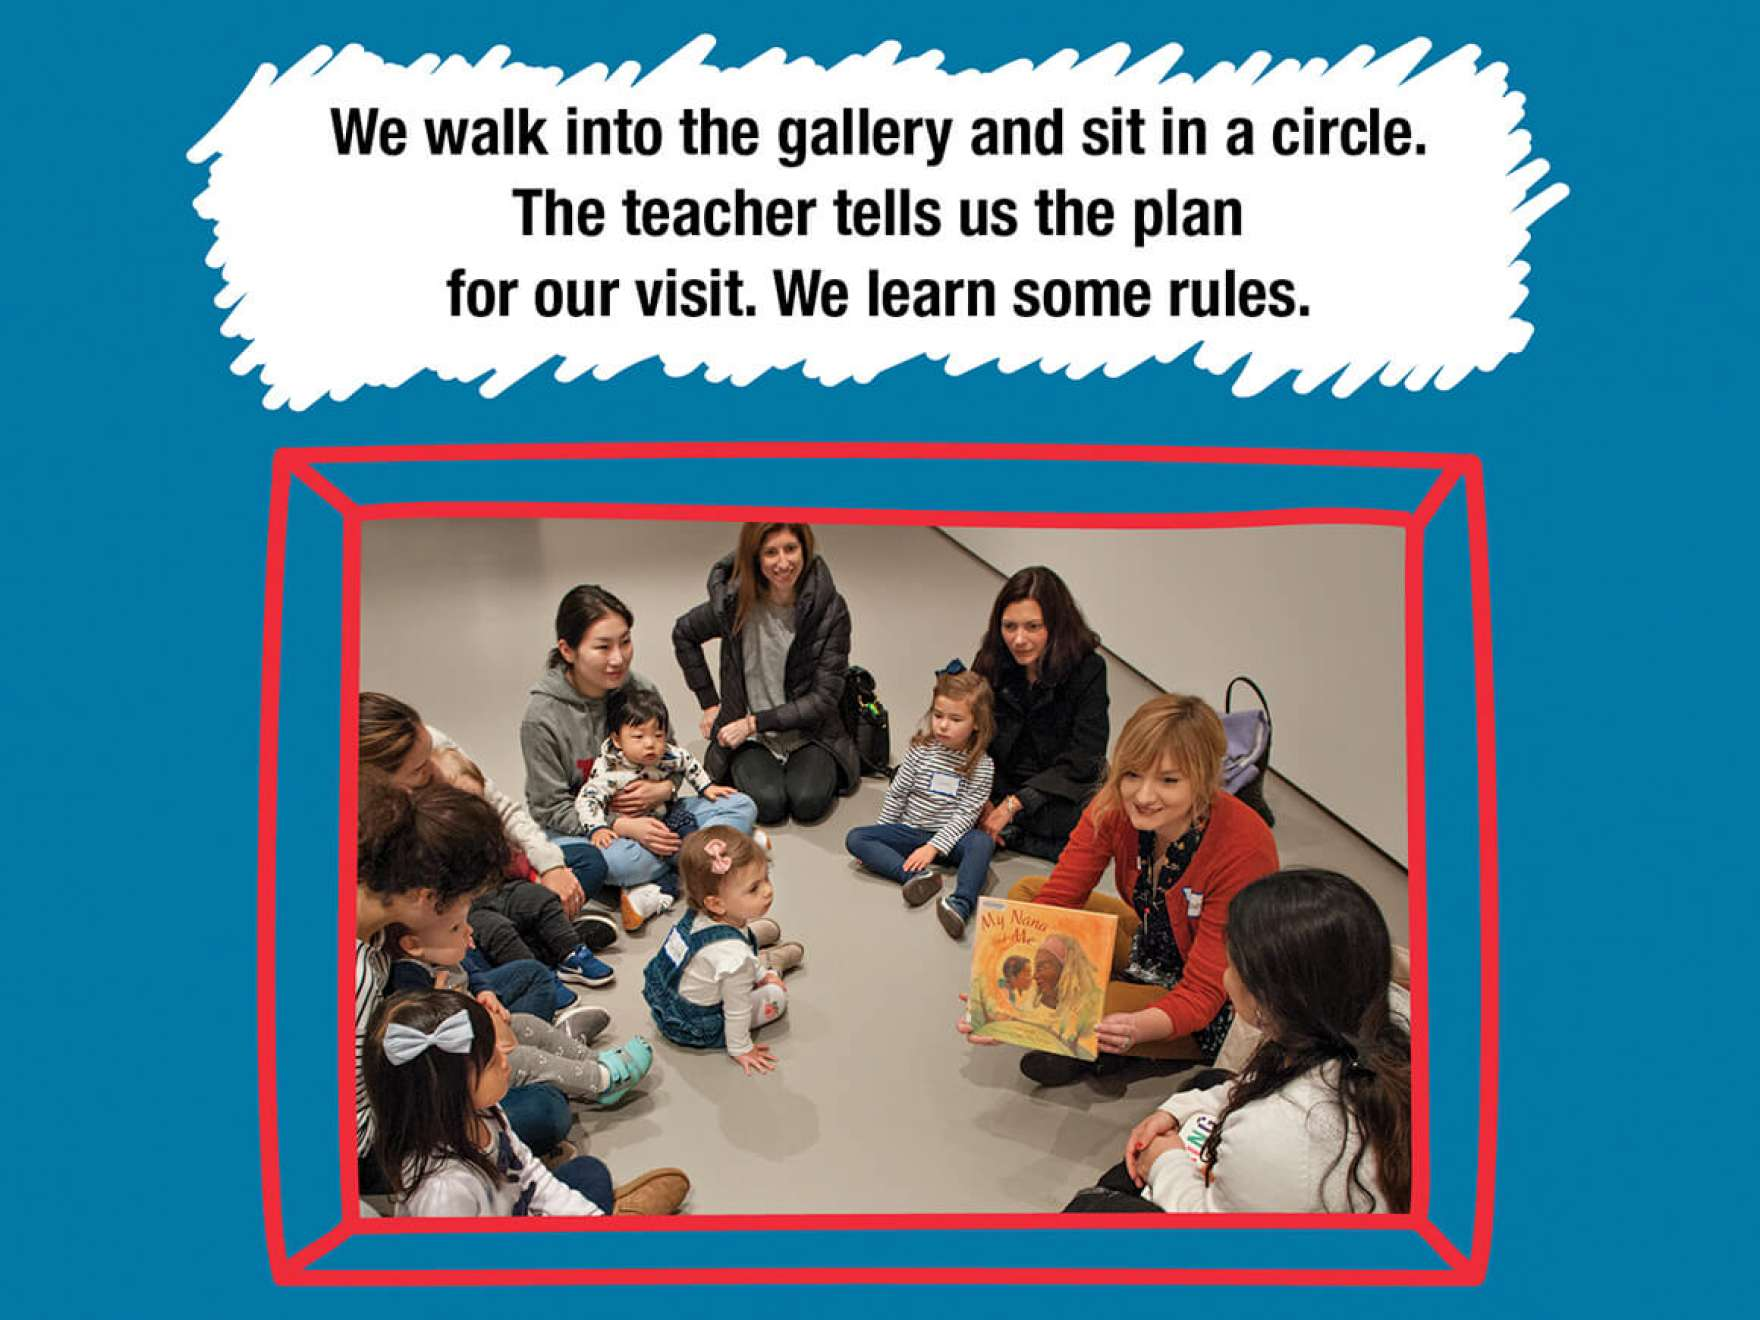 We walk into the gallery and sit in a circle. The teacher tells us the plan 